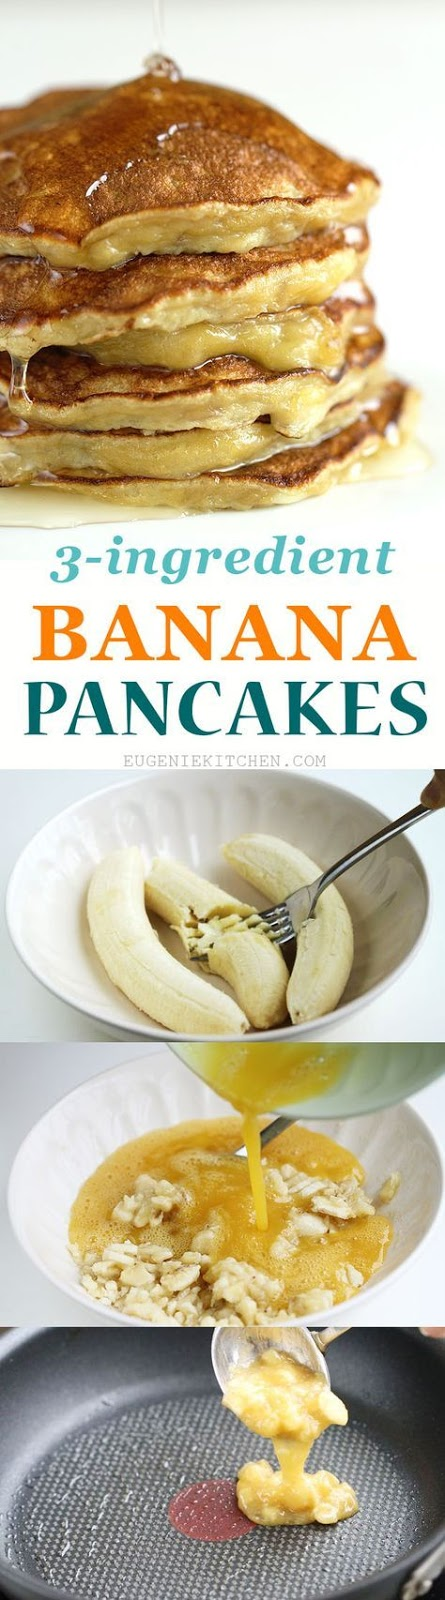 3-Ingredient Banana Pancakes Glueten-Free, Flourless, Low-Calorie - Healthy Recipes